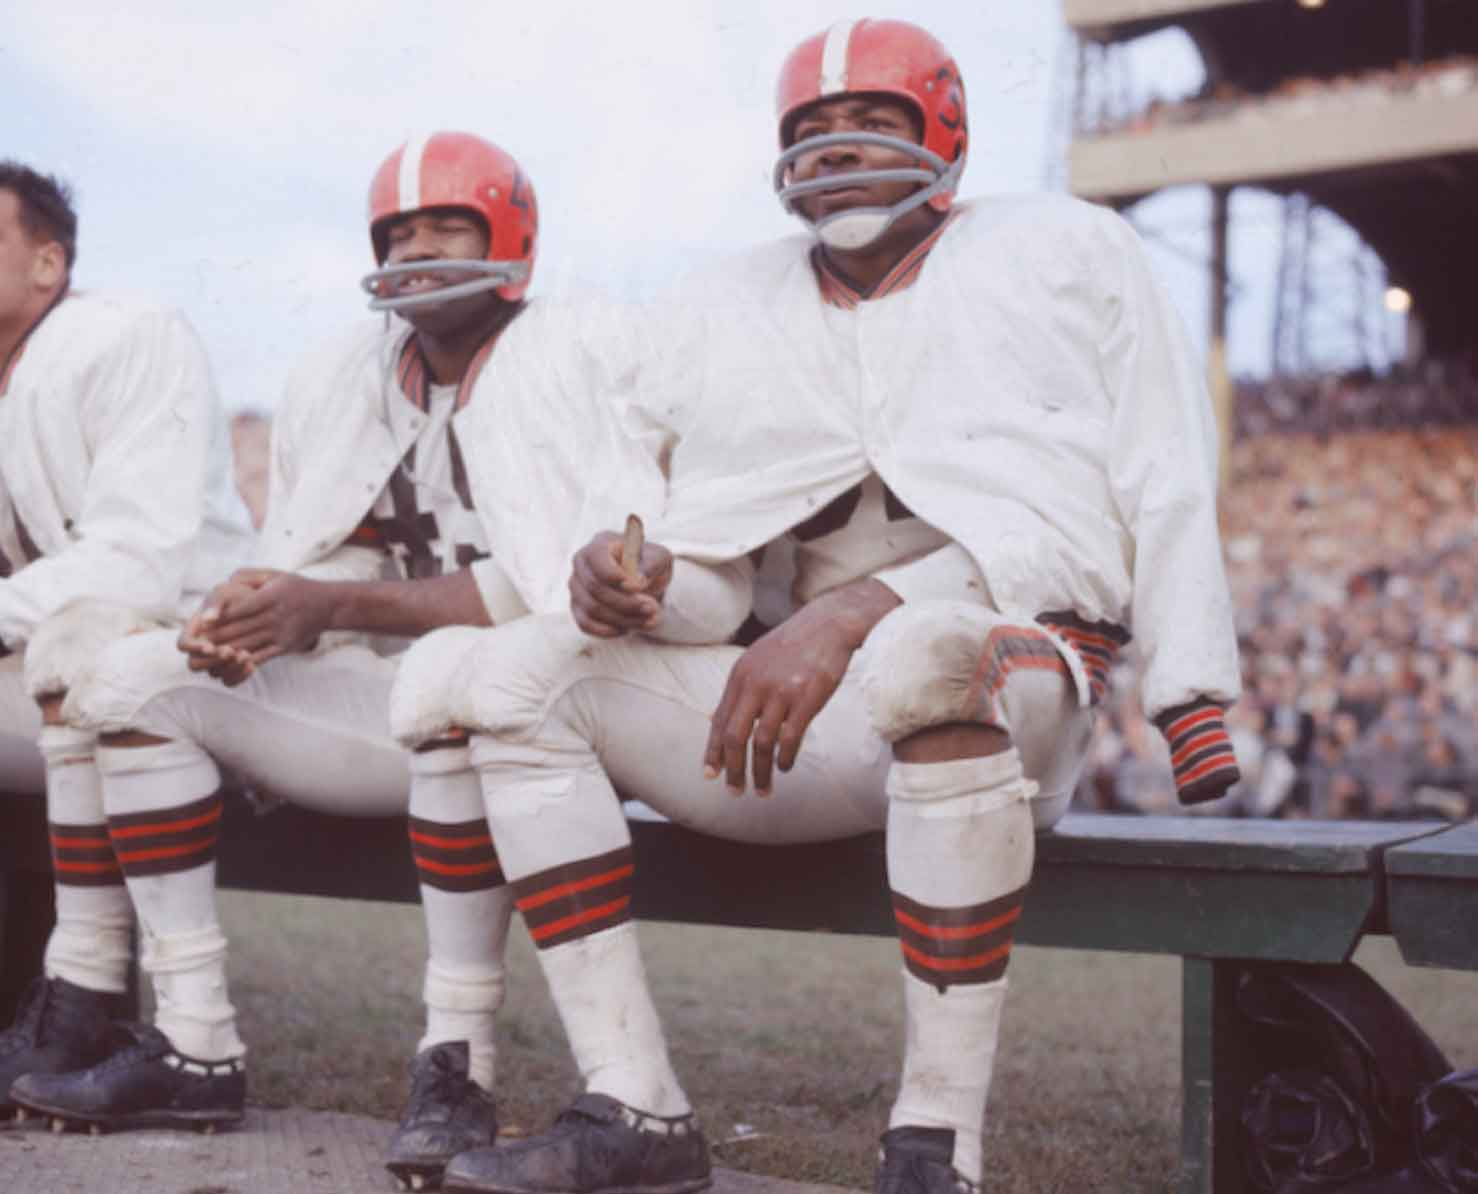 Jim Brown, running back: giocatori football americano